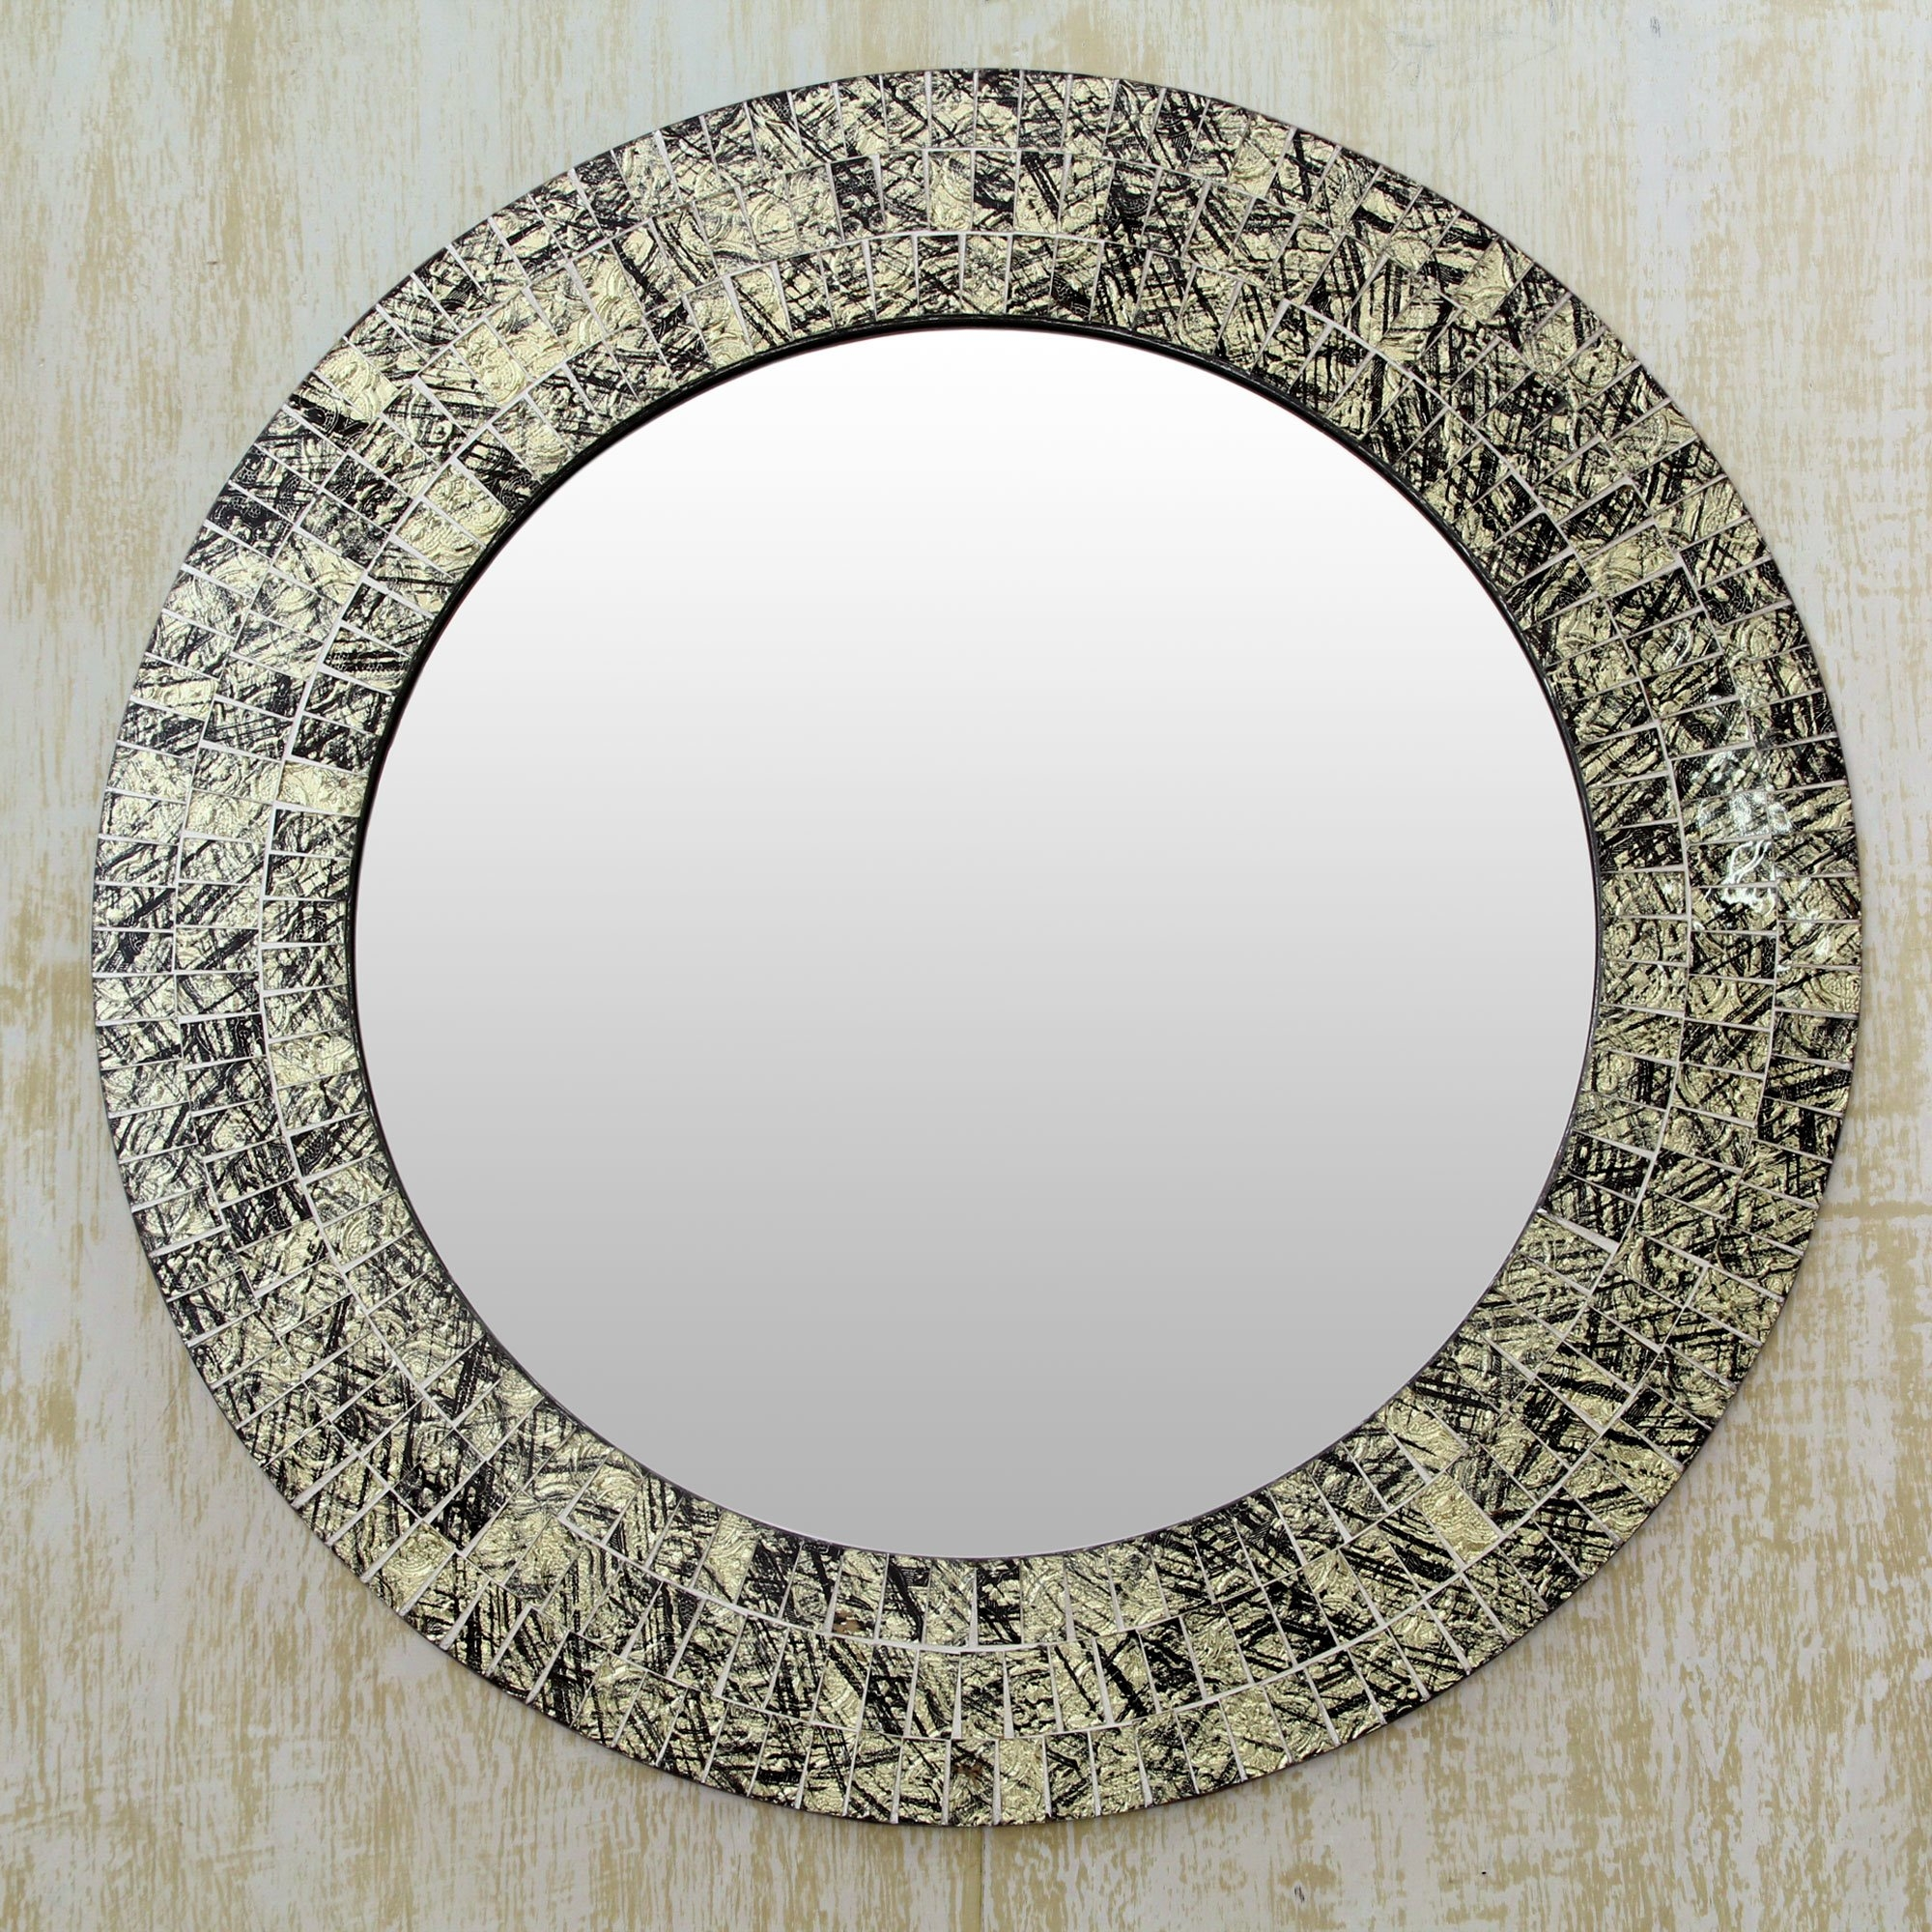 novica golden moon glass mosaic round wall mirror wayfair in round mosaic wall mirror image